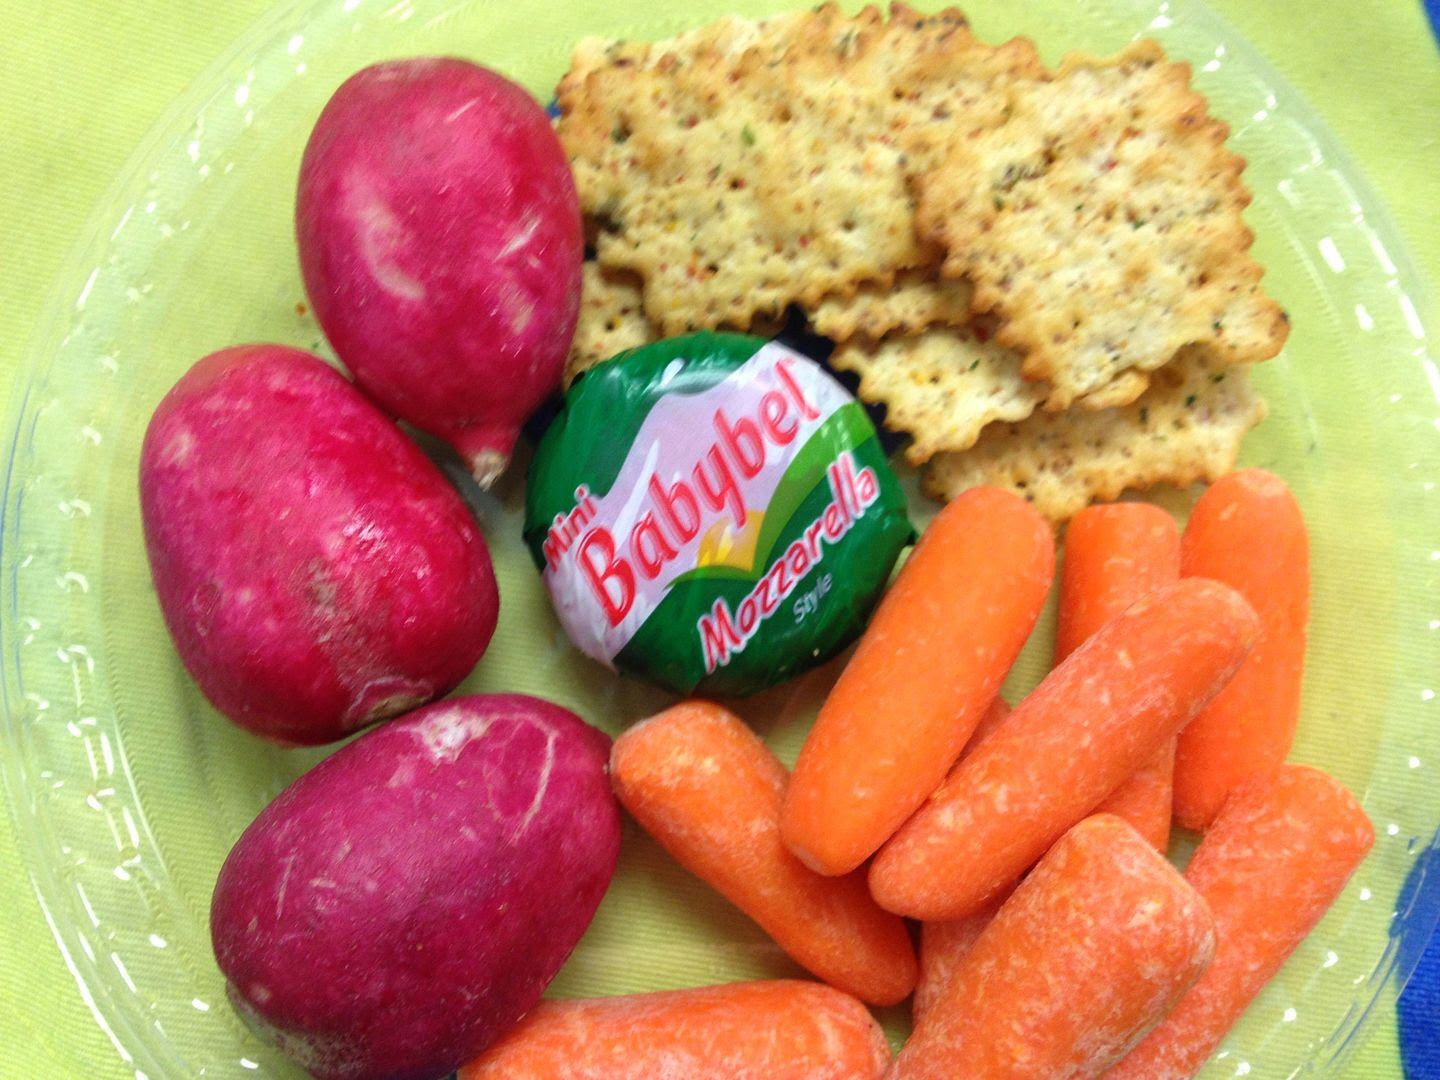 Snack smarter with Babybel photo IMG_2451_zps09d04217.jpg